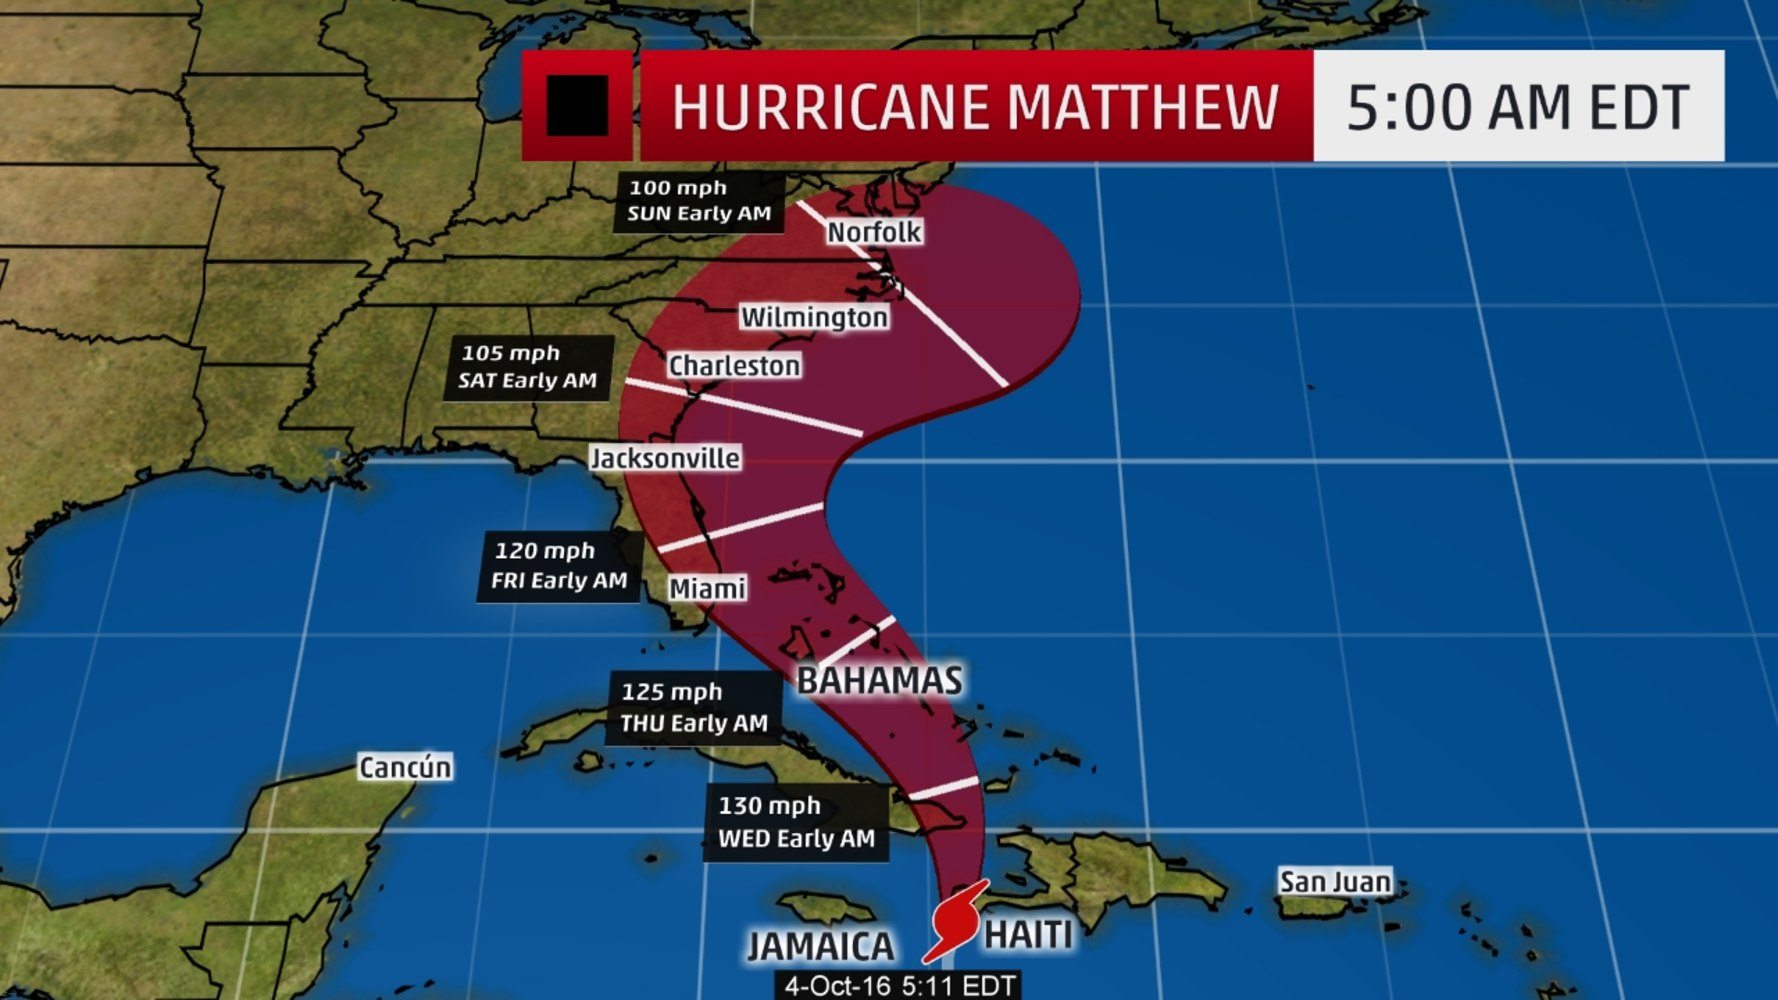 http://media1.s-nbcnews.com/j/newscms/2016_40/1735081/161004-hurricane-matthew-cr-0517_1090abcfc45fe31e5b9f0e73c31f9a90.nbcnews-ux-2880-1000.jpg